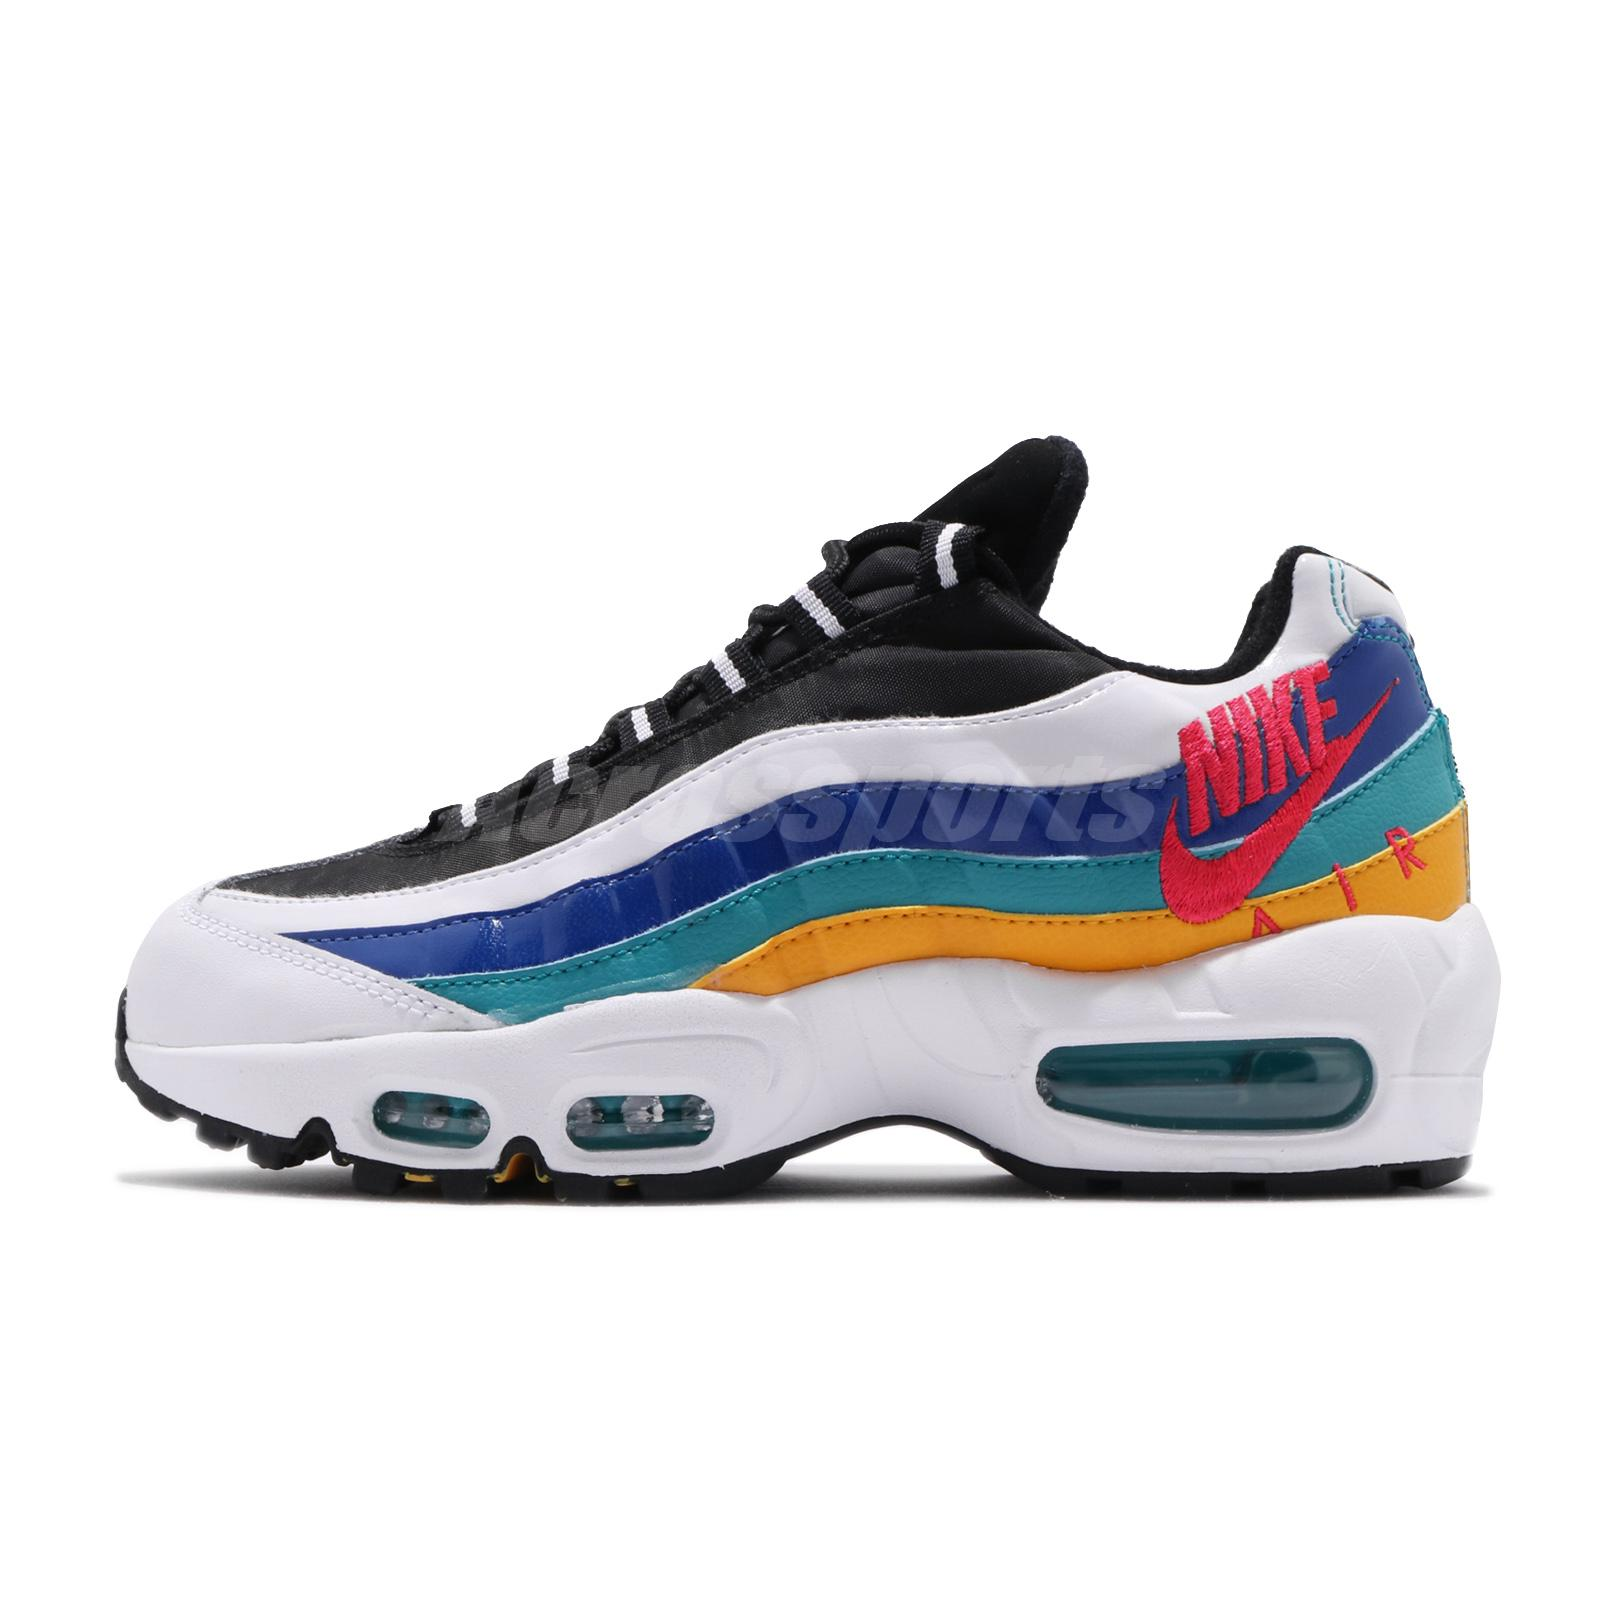 Details about Nike Air Max 95 Premium Windbreaker White Red Gold Women Running Shoe CI1900 123